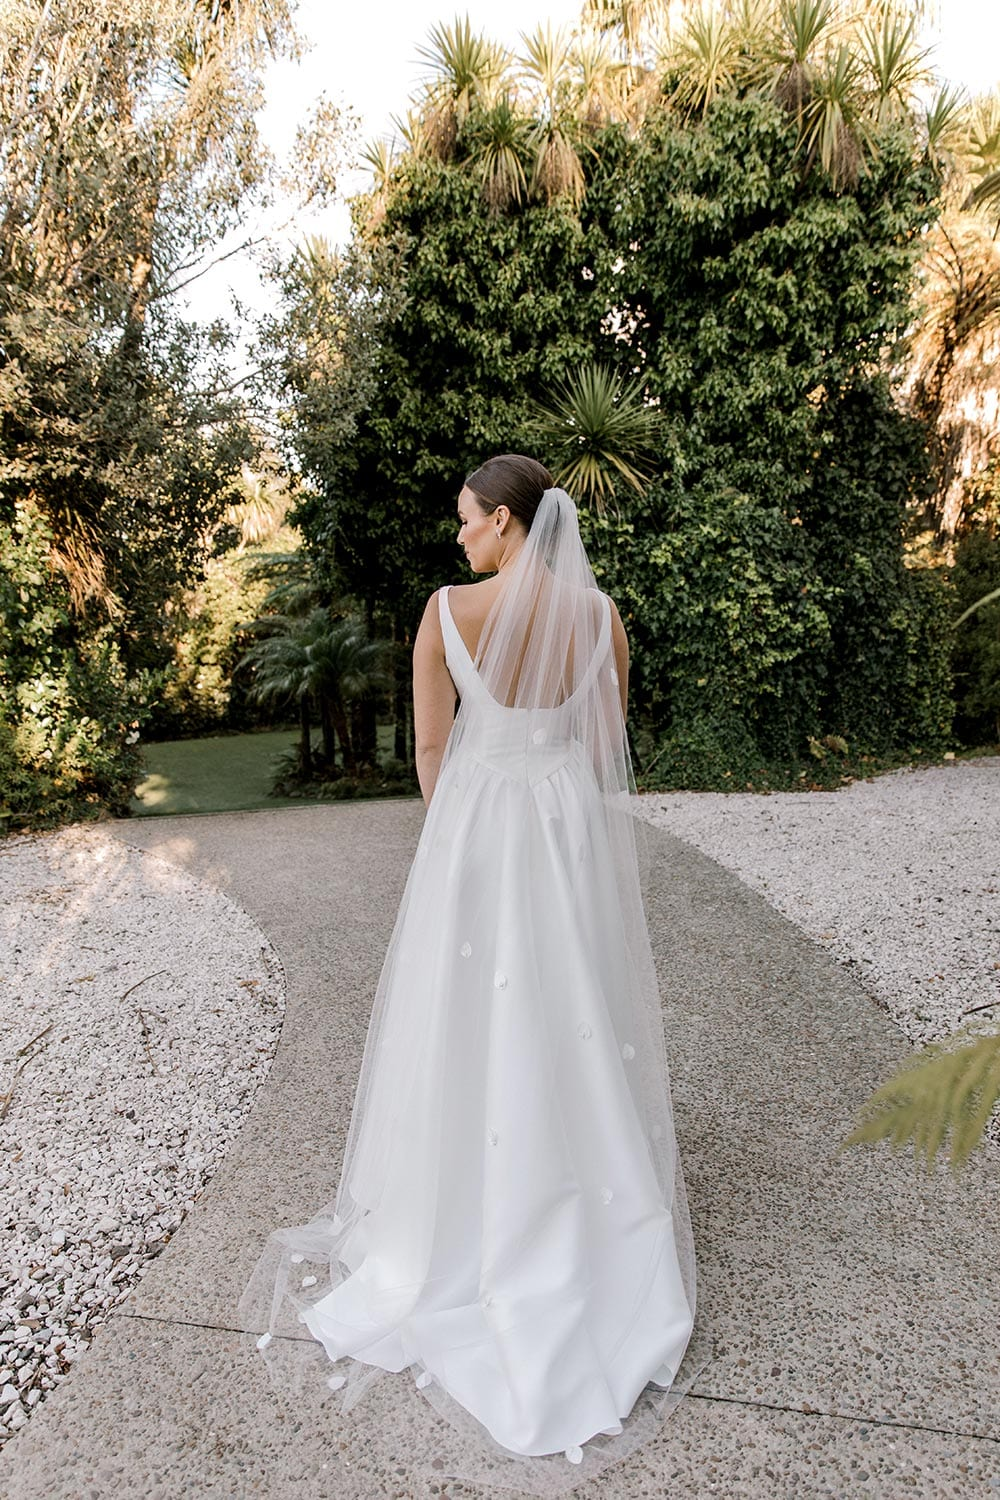 Madison Wedding Dress from Vinka Design. Classic Mikado satin wedding dress. Structured bodice with deep V-neckline & low back. Side pockets in the skirt give fun & versatility, with a sweeping train. Full length of gown from the back. Photographed outdoors.